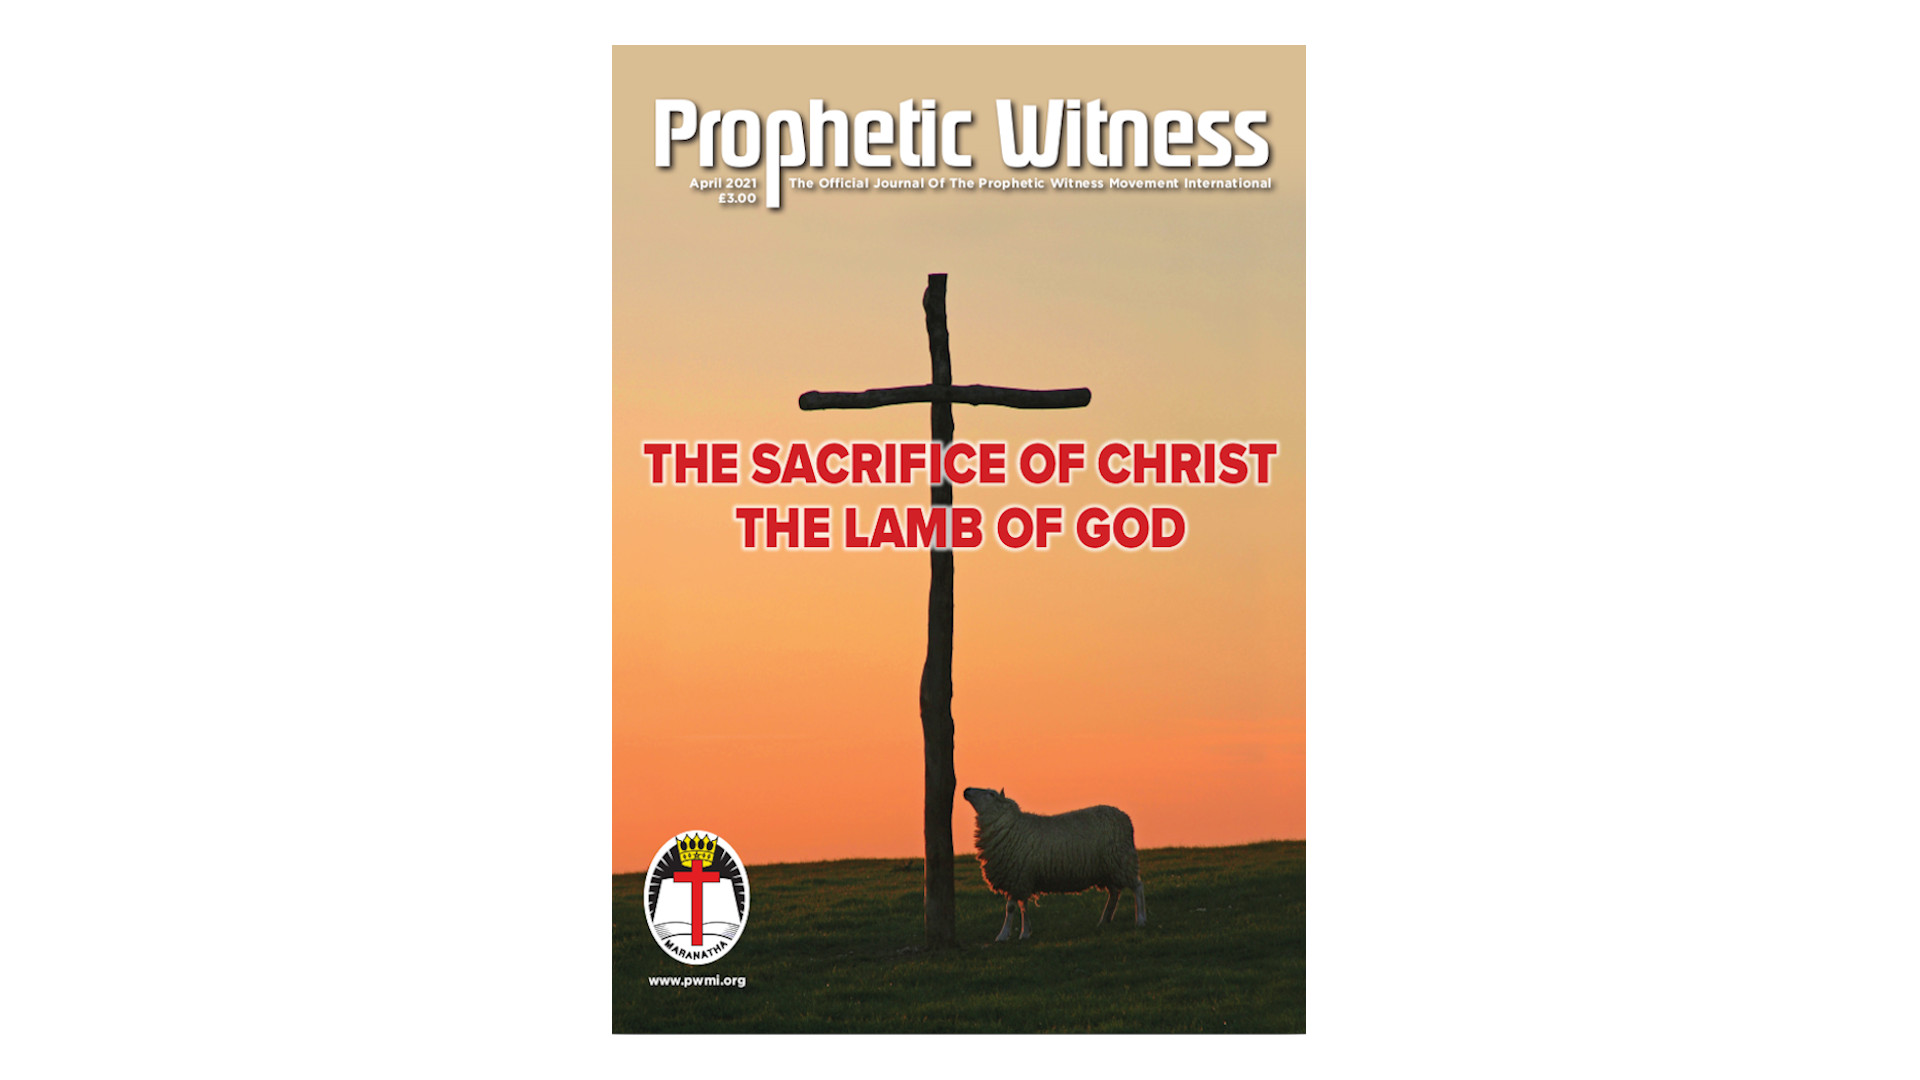 The Sacrifice of Christ - The Lamb of God